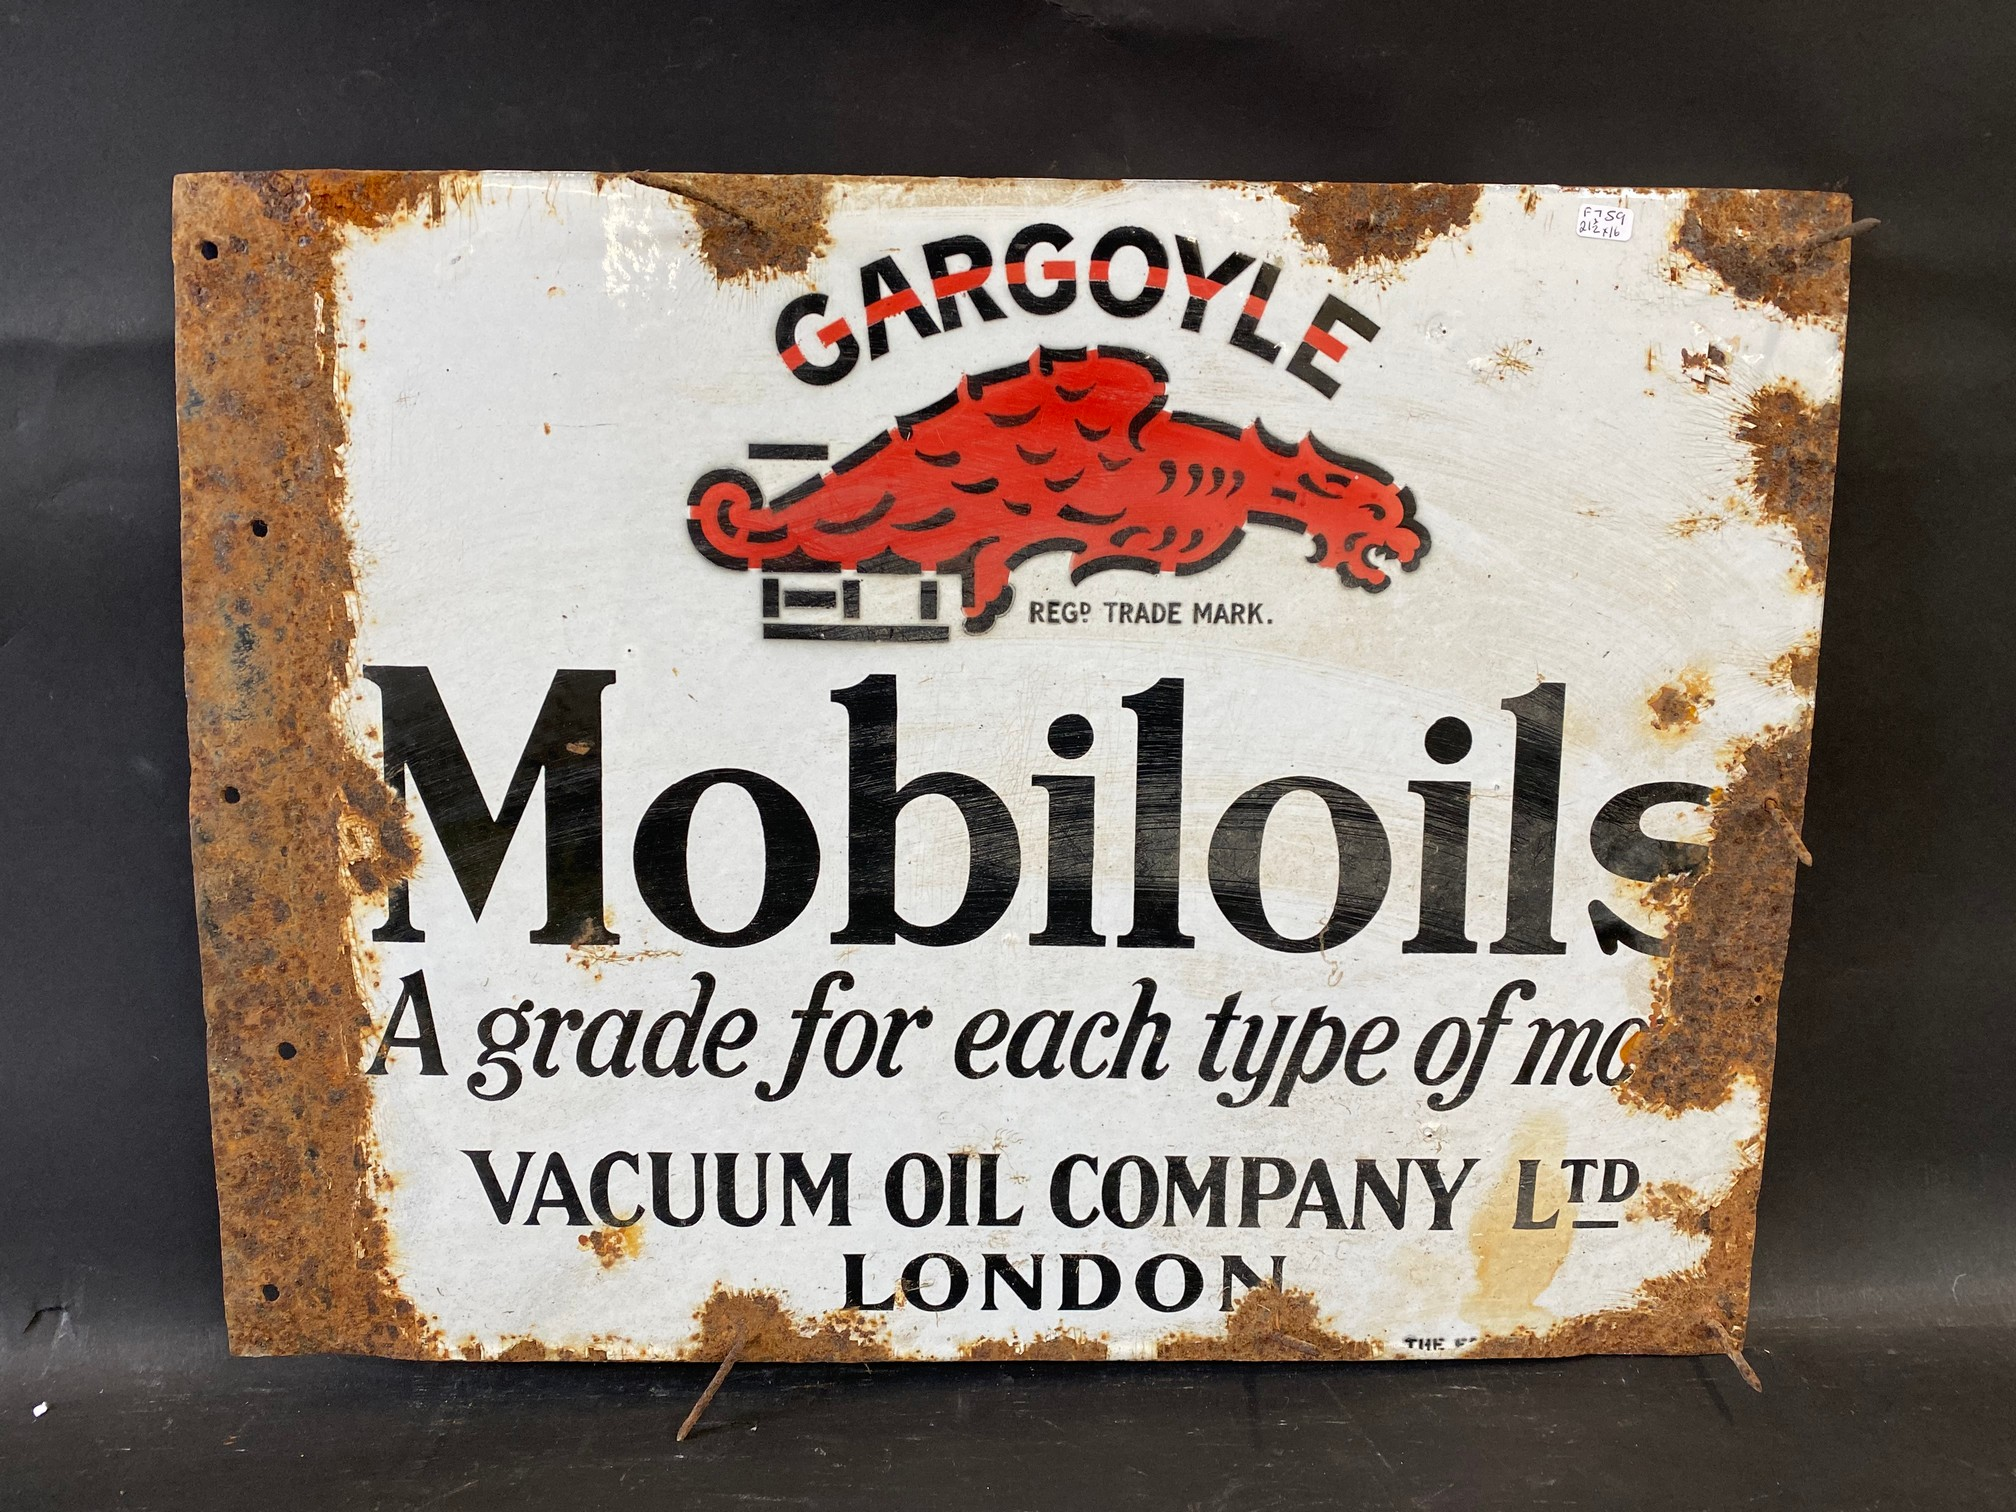 A Gargoyle Mobiloils 'a grade for each type of motor' double sided enamel sign with flattened - Image 2 of 2